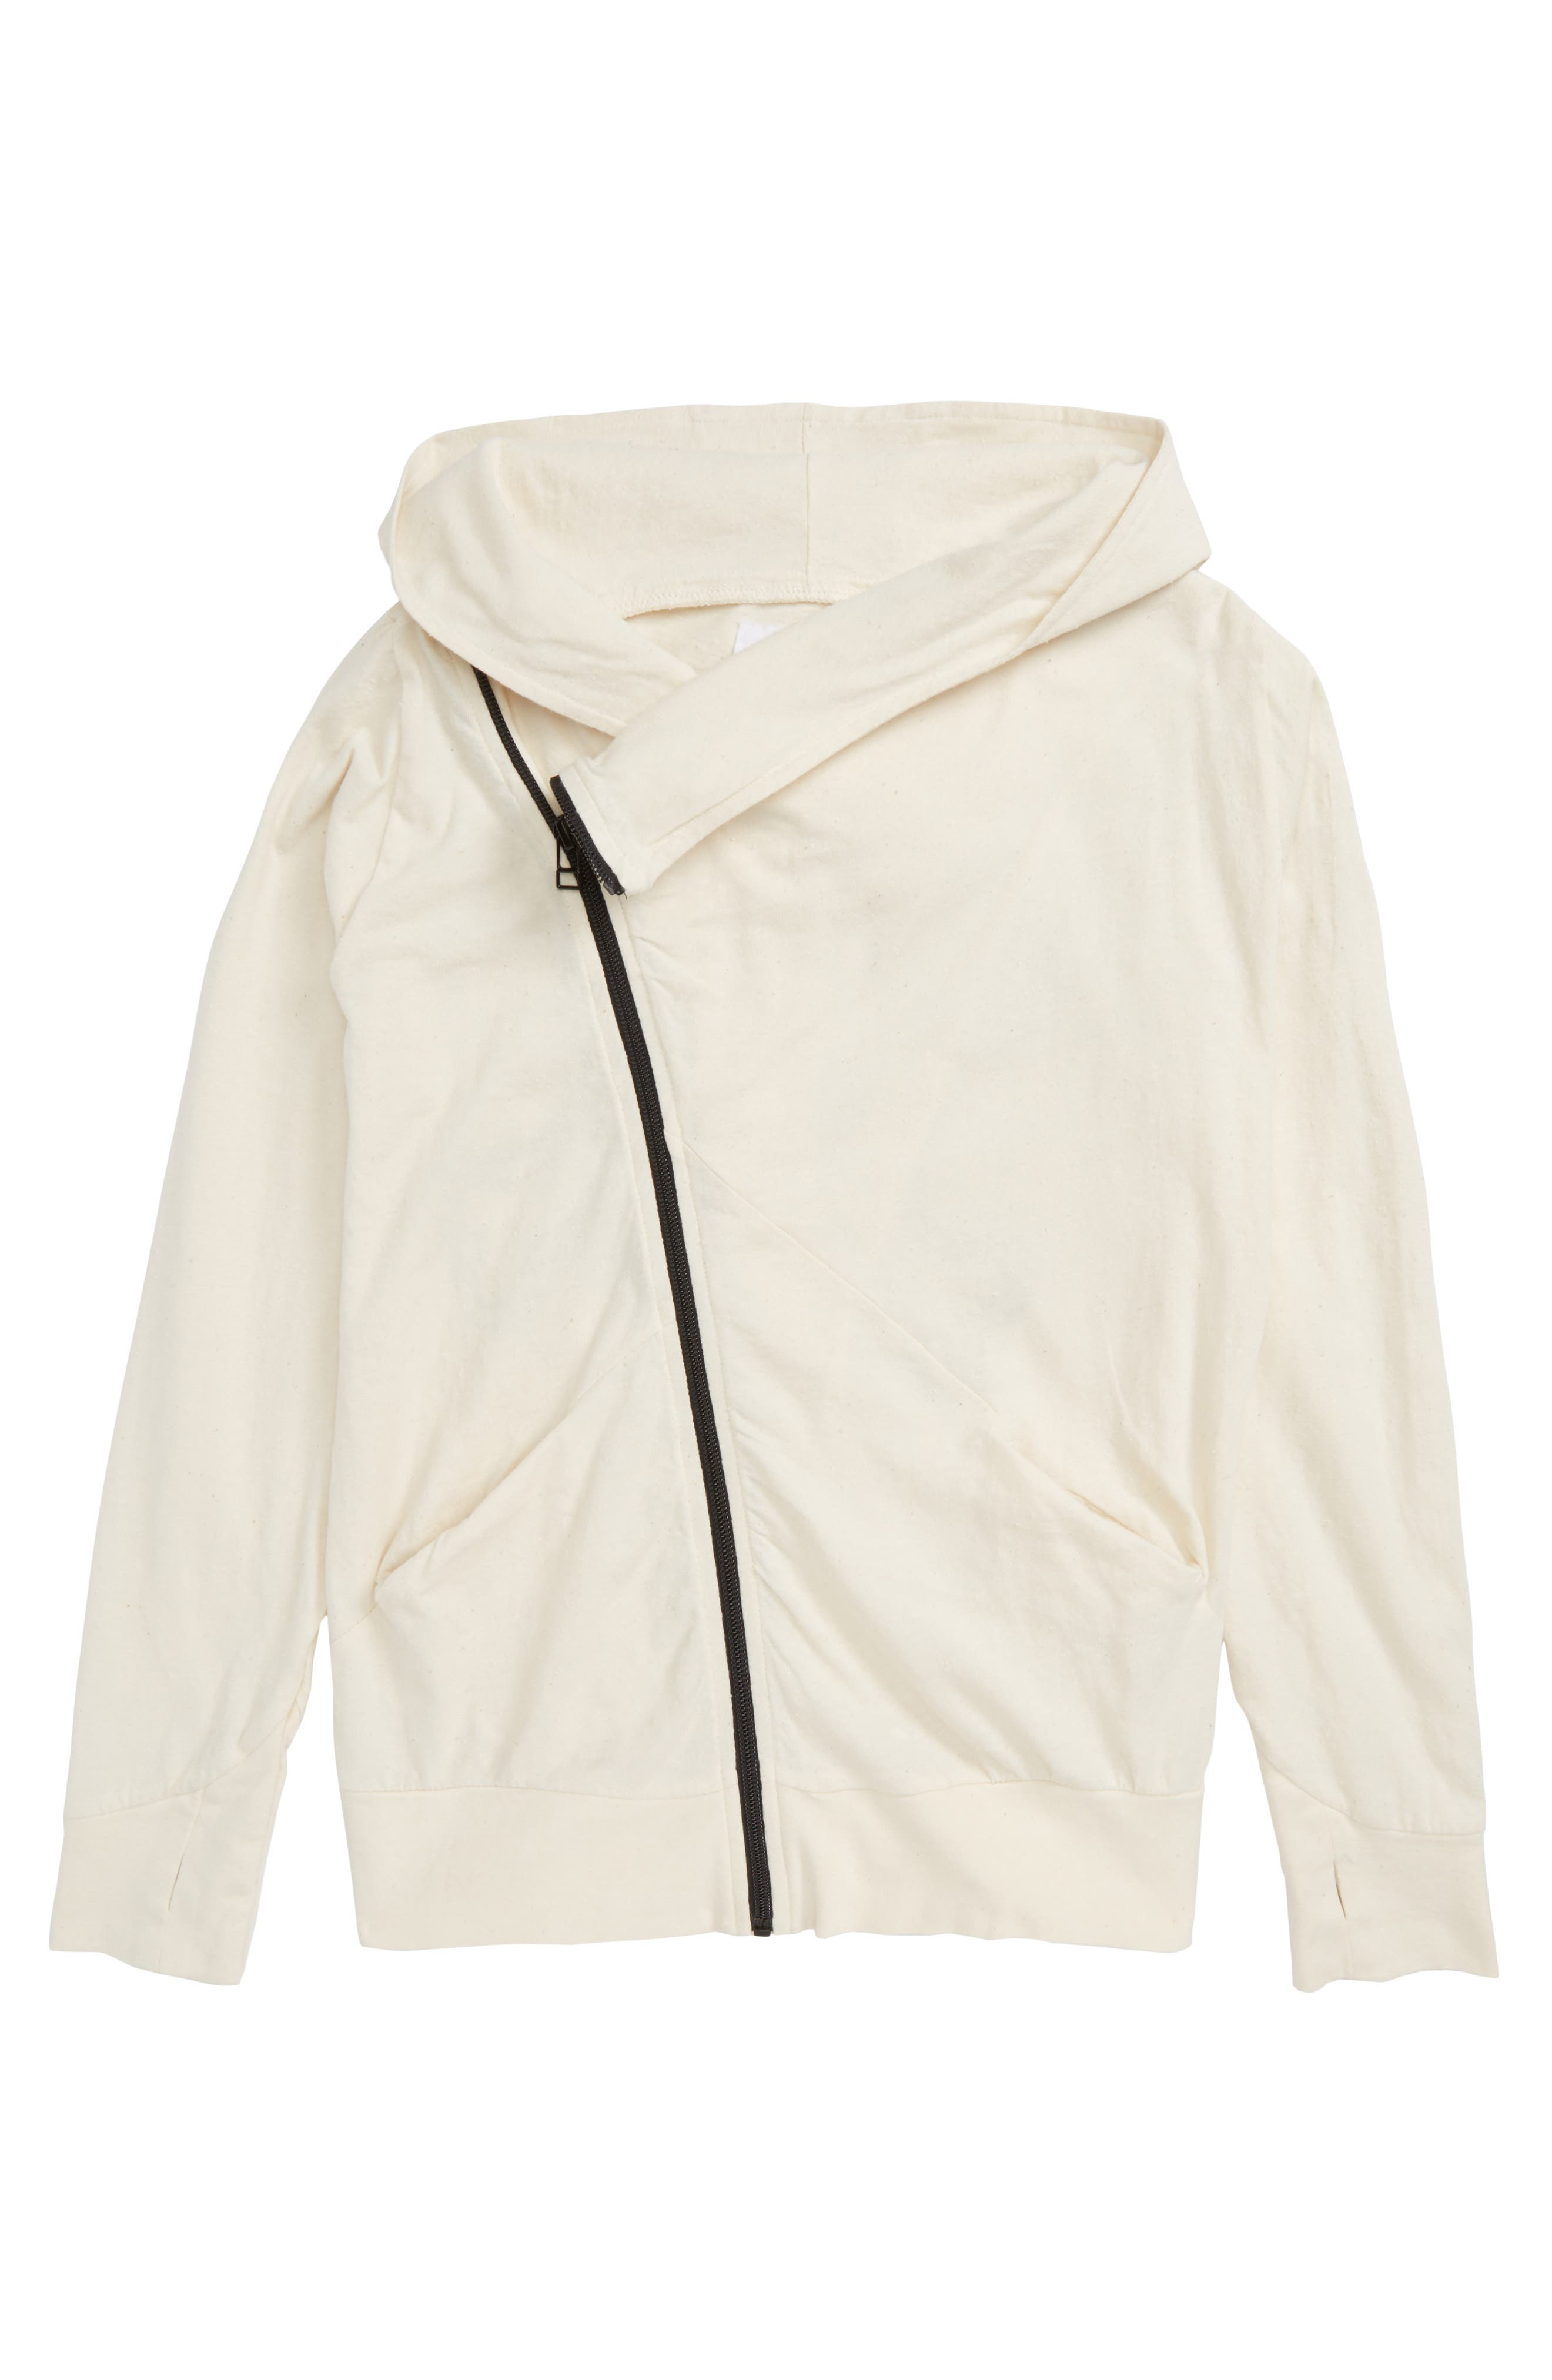 Embroidered Skull Zip Front Hoodie,                         Main,                         color, White